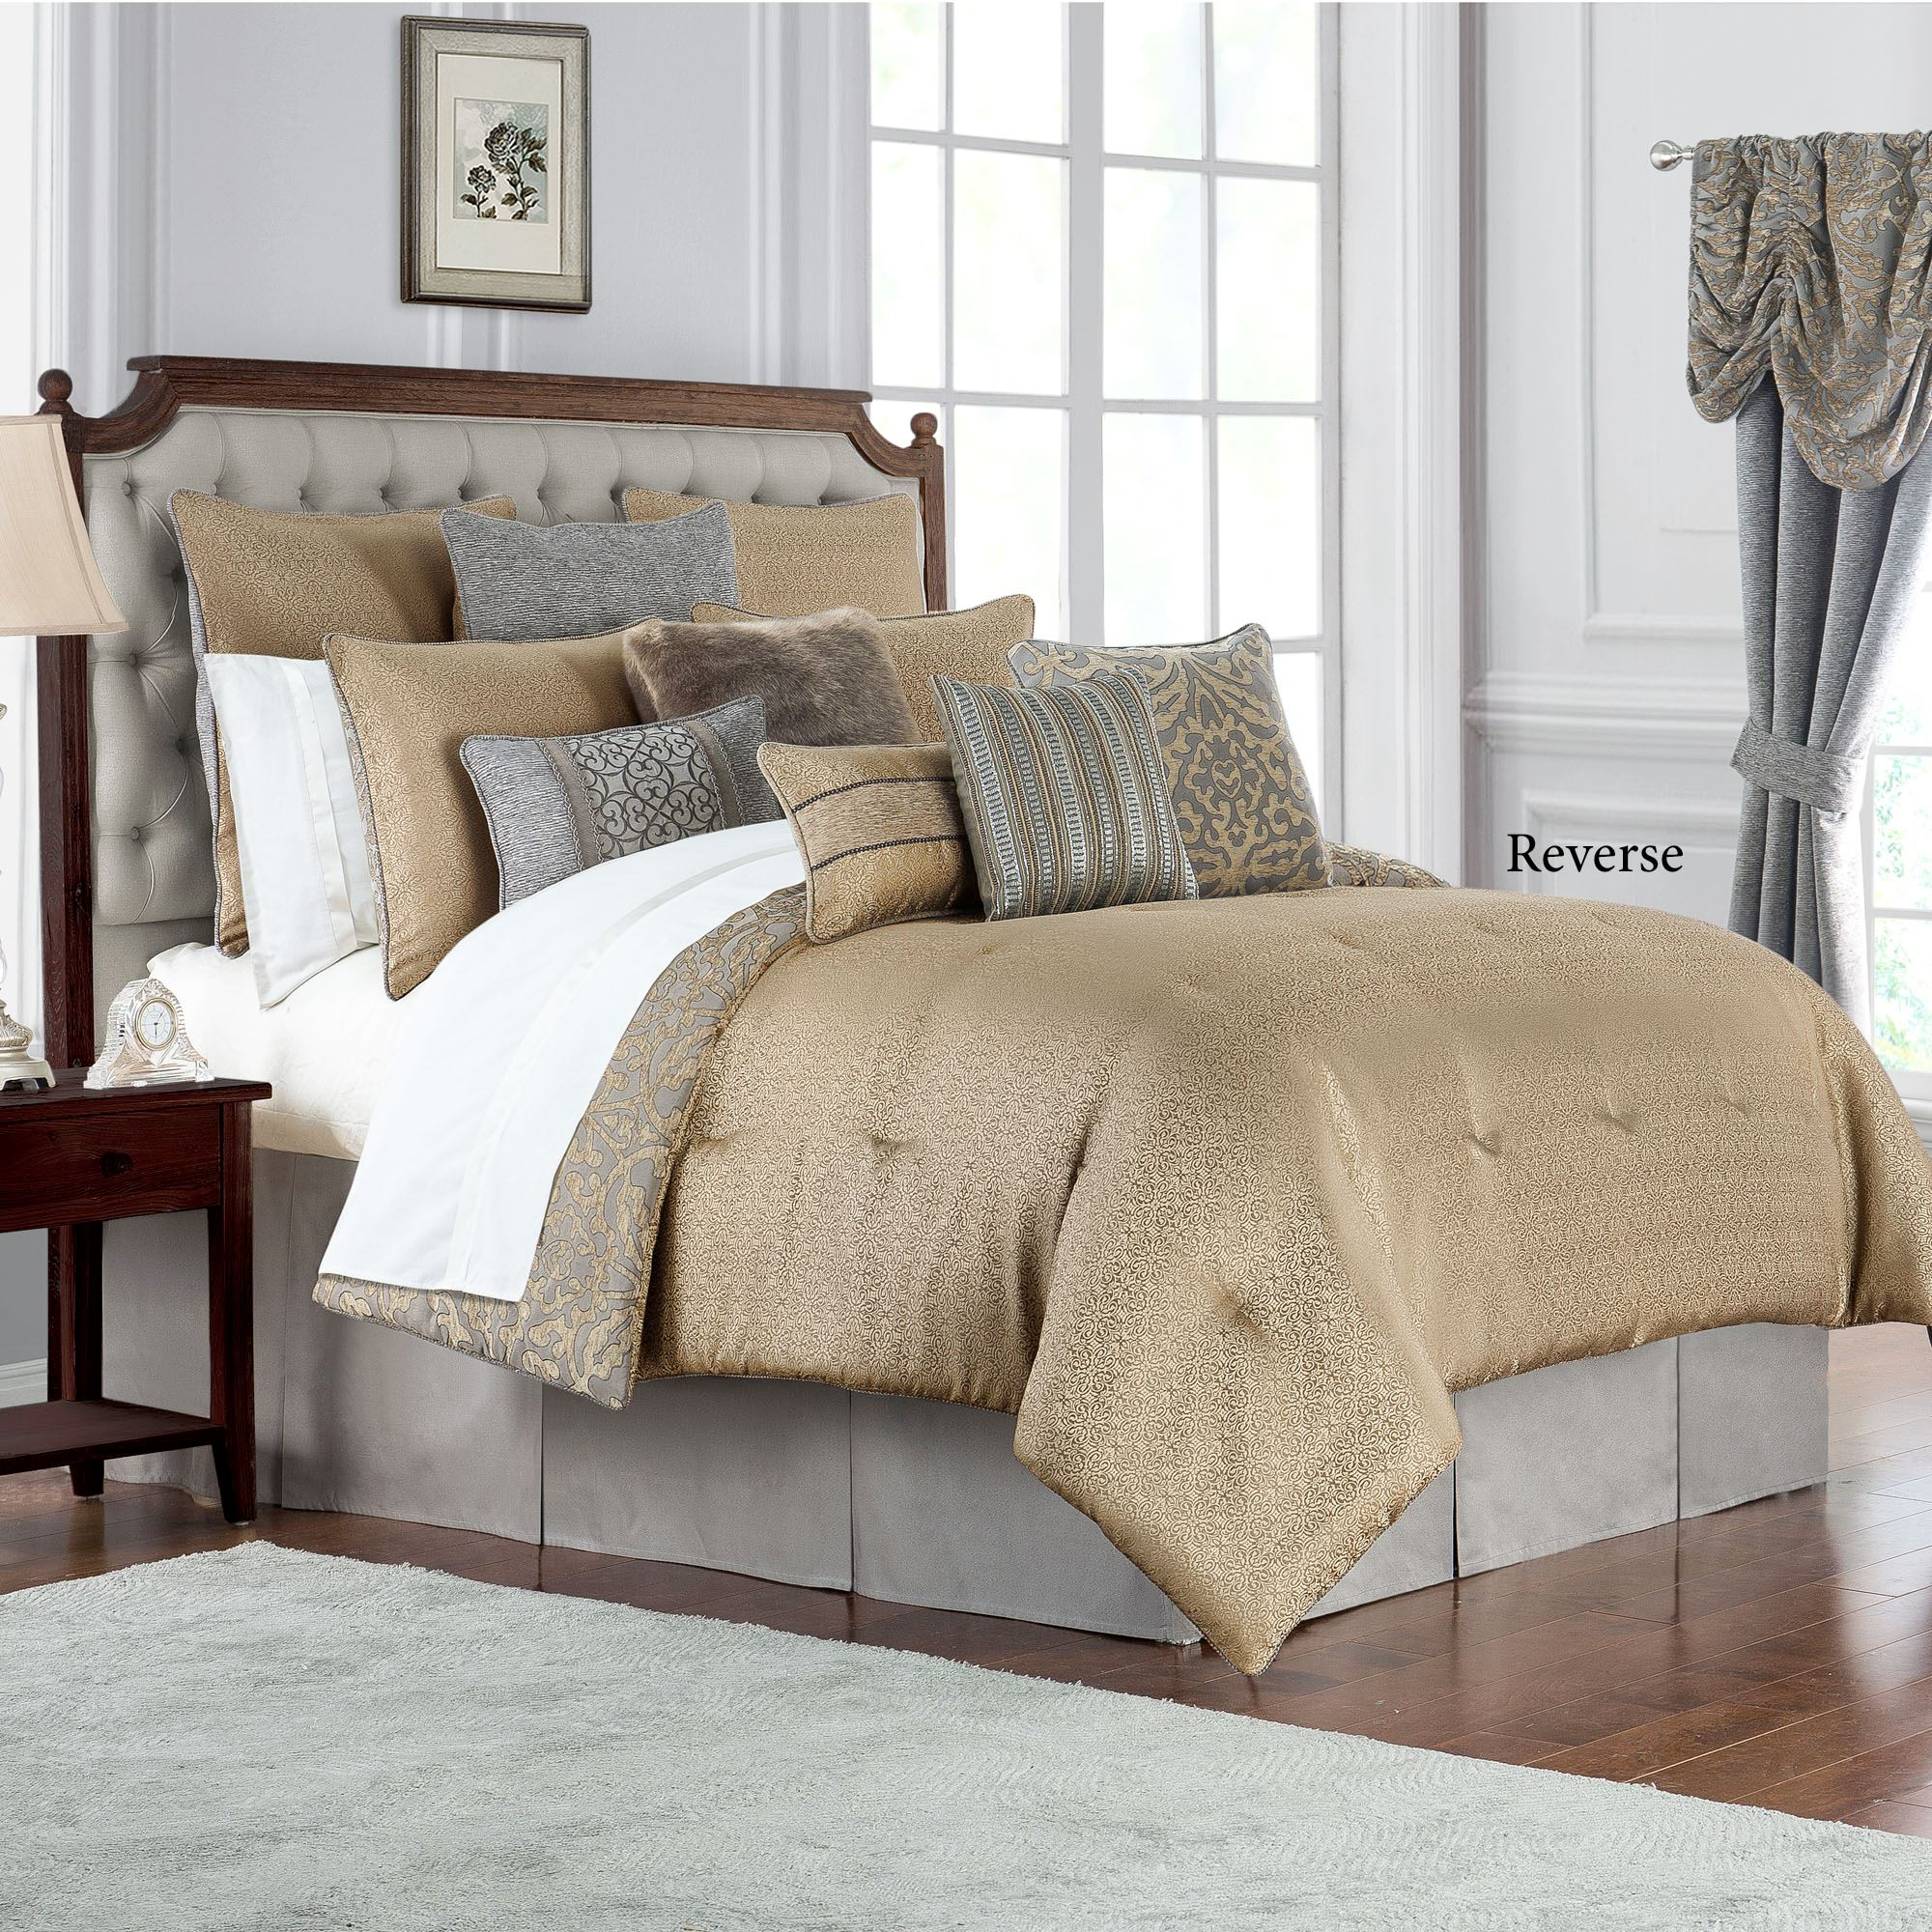 Carrick Reversible Gold And Gray Damask Comforter Bedding